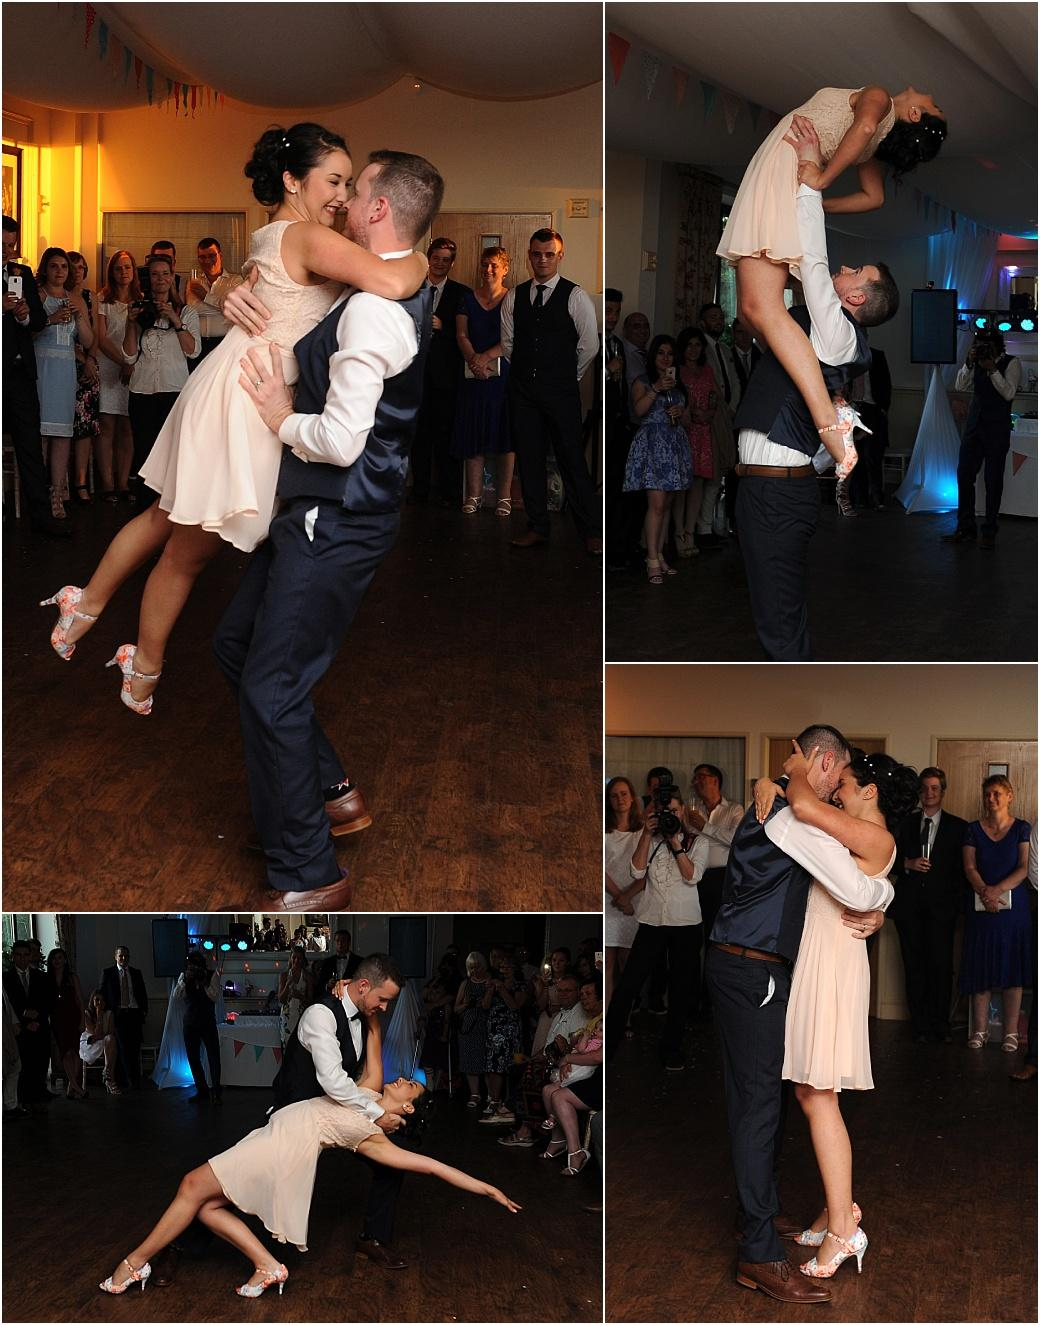 Bride and Groom captured in these wedding pictures at  Clock Barn Hall Godalming as they put on a spectacular floor show for their guests during their exciting first dance